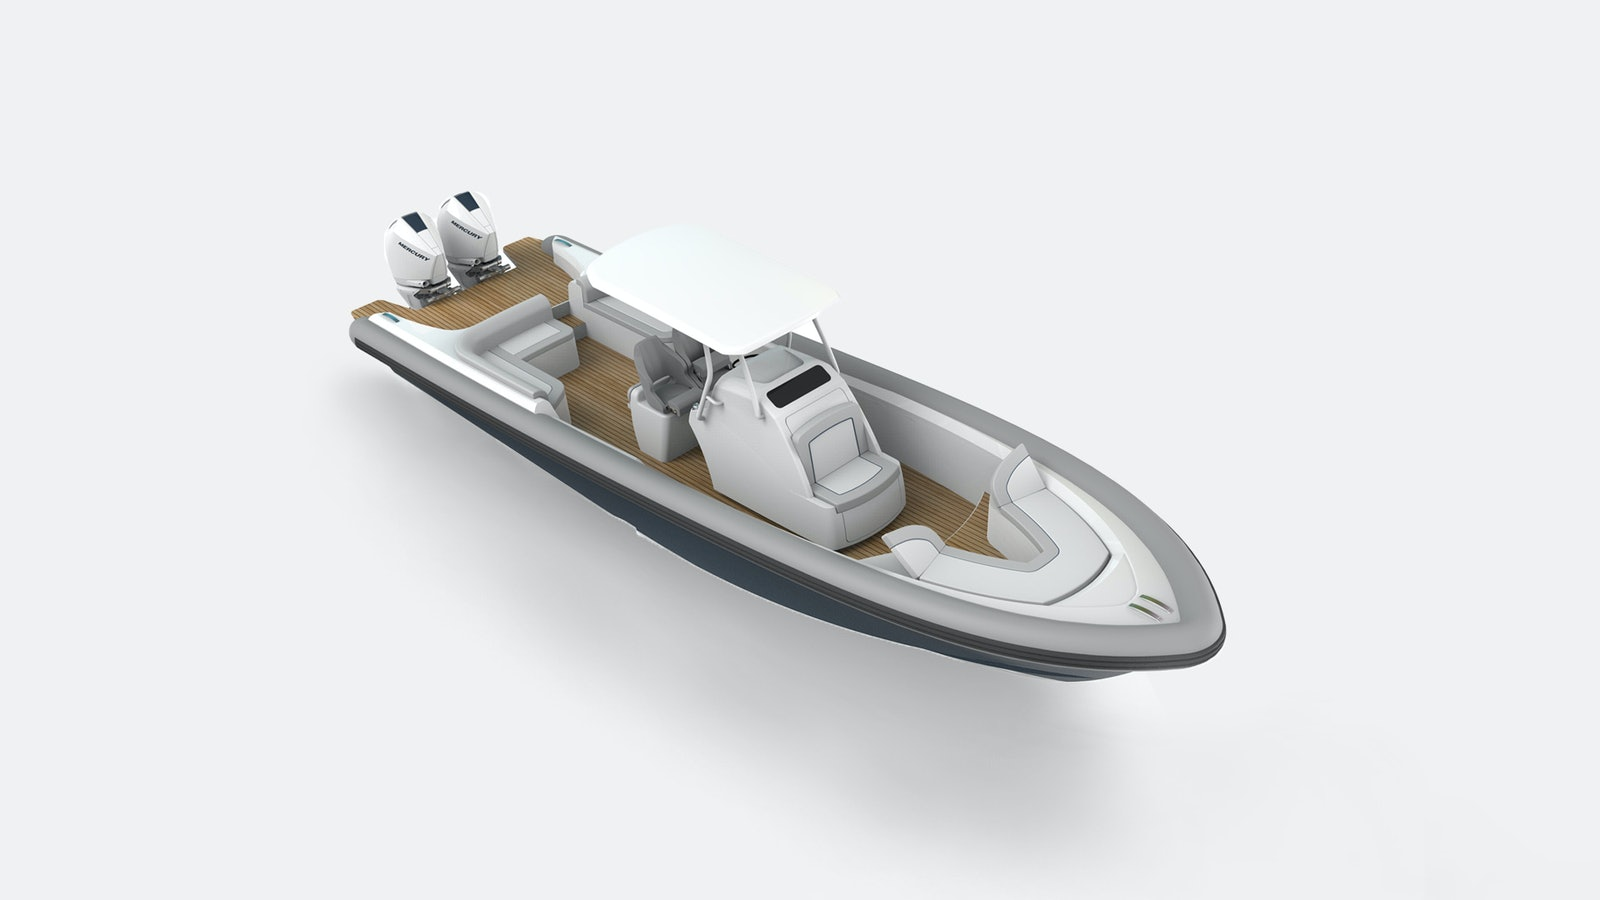 Ocean-1-Rogue-330-luxury-yacht-tender-Mercury-300-outboards-overhead-profile